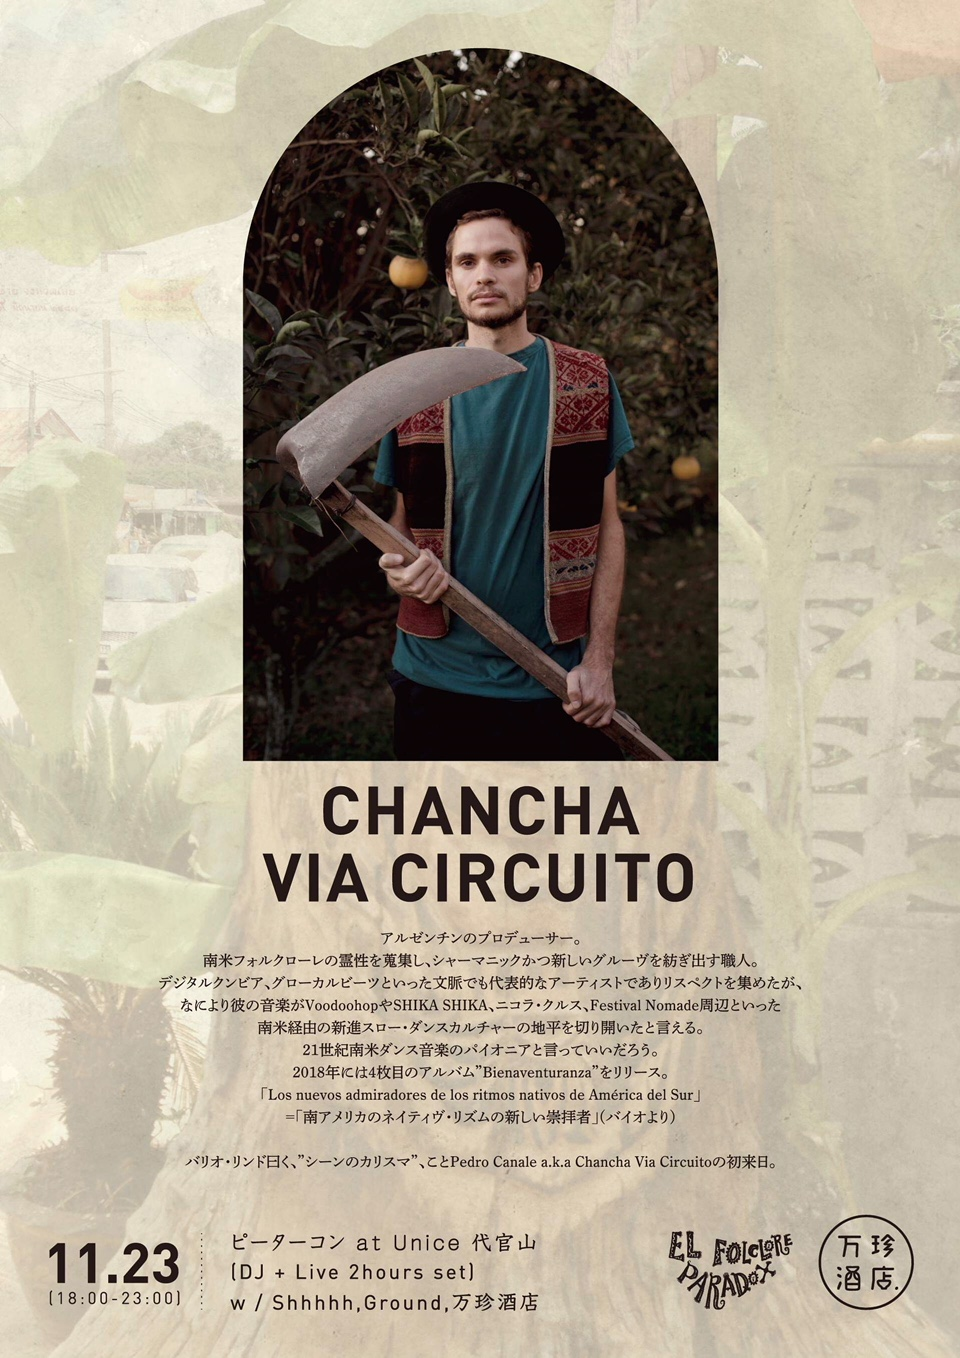 EL Folclore Paradox presents  Chancha Via Circuito JAPAN TOUR 2018  沖縄